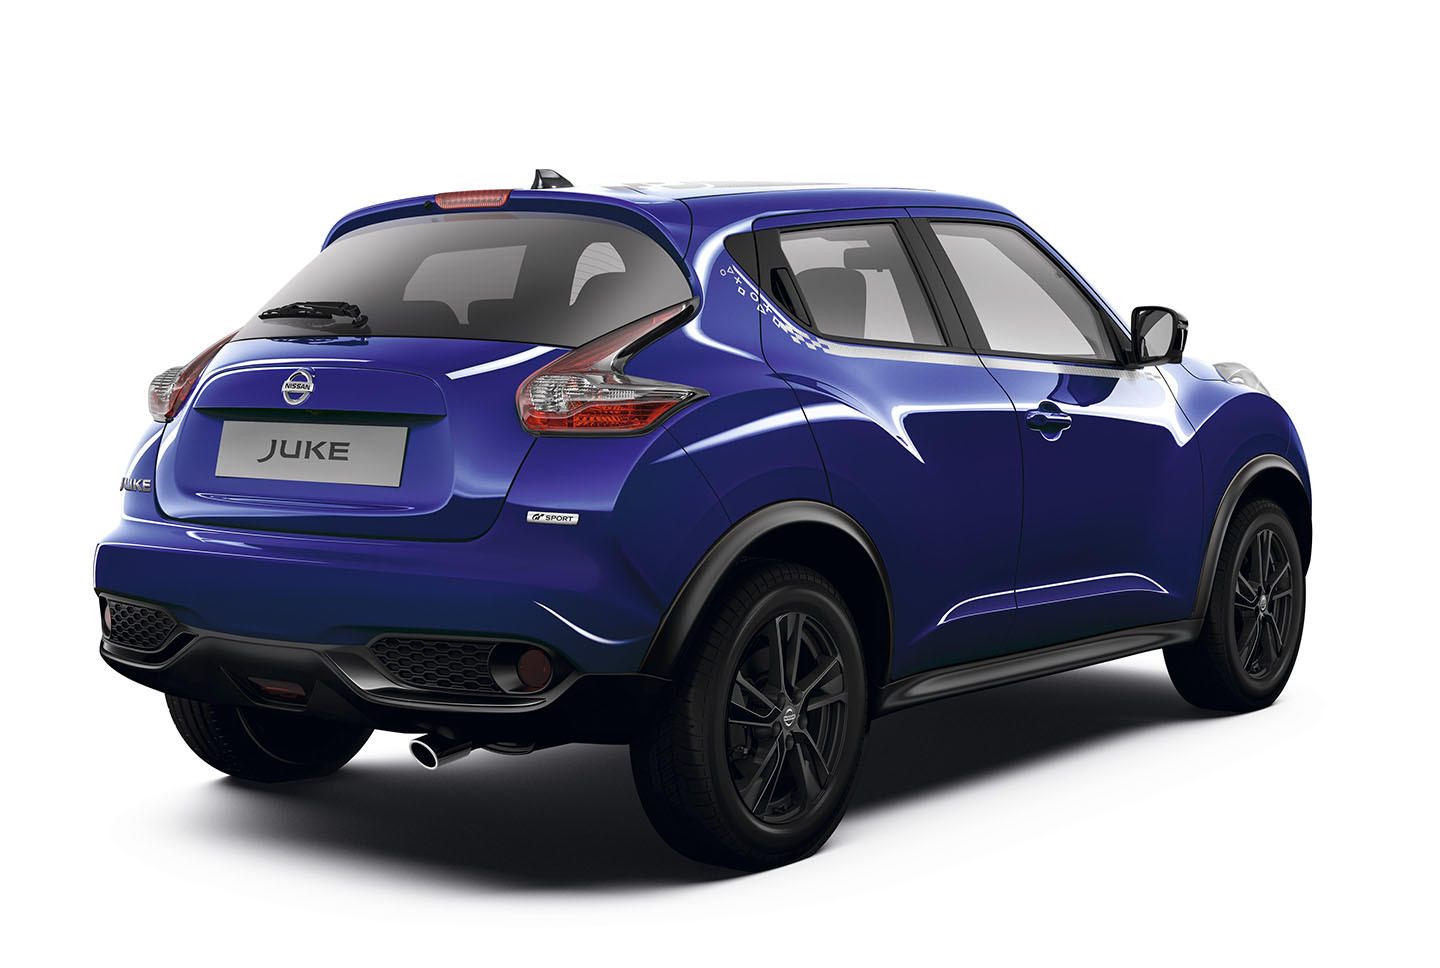 nissan juke gt sport playstation el crossover real que puedes ganar jugando a gran turismo. Black Bedroom Furniture Sets. Home Design Ideas